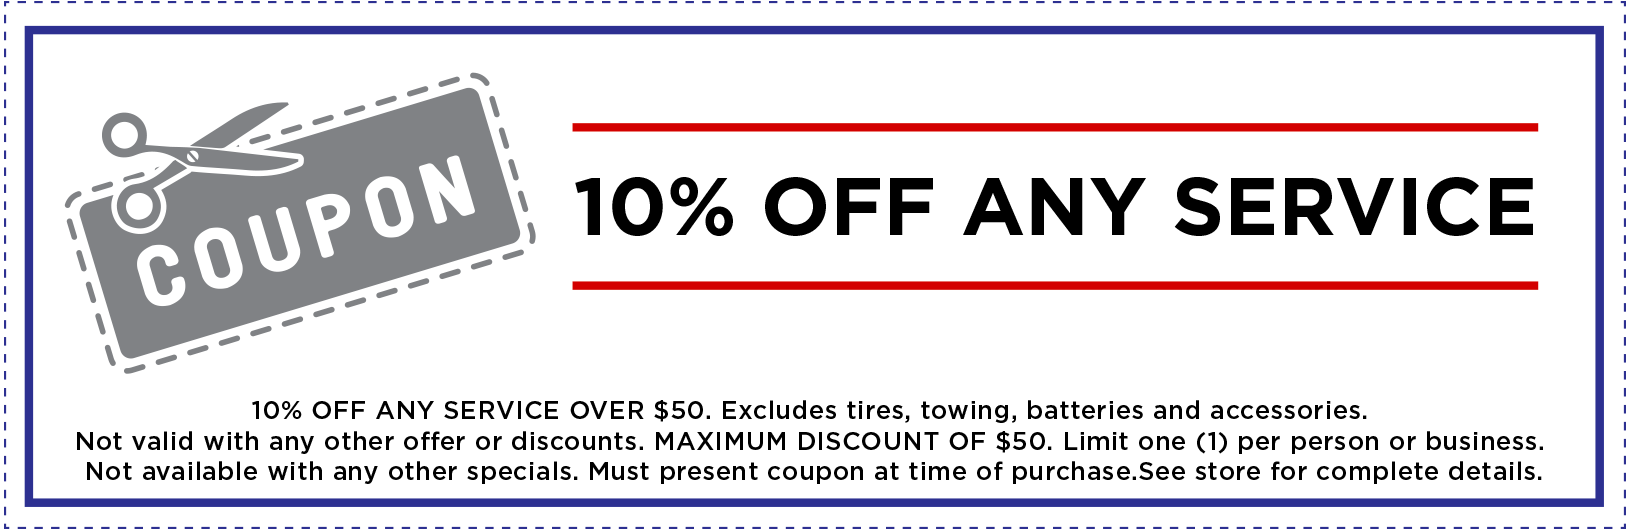 10% Off Coupon. See Shop for Details